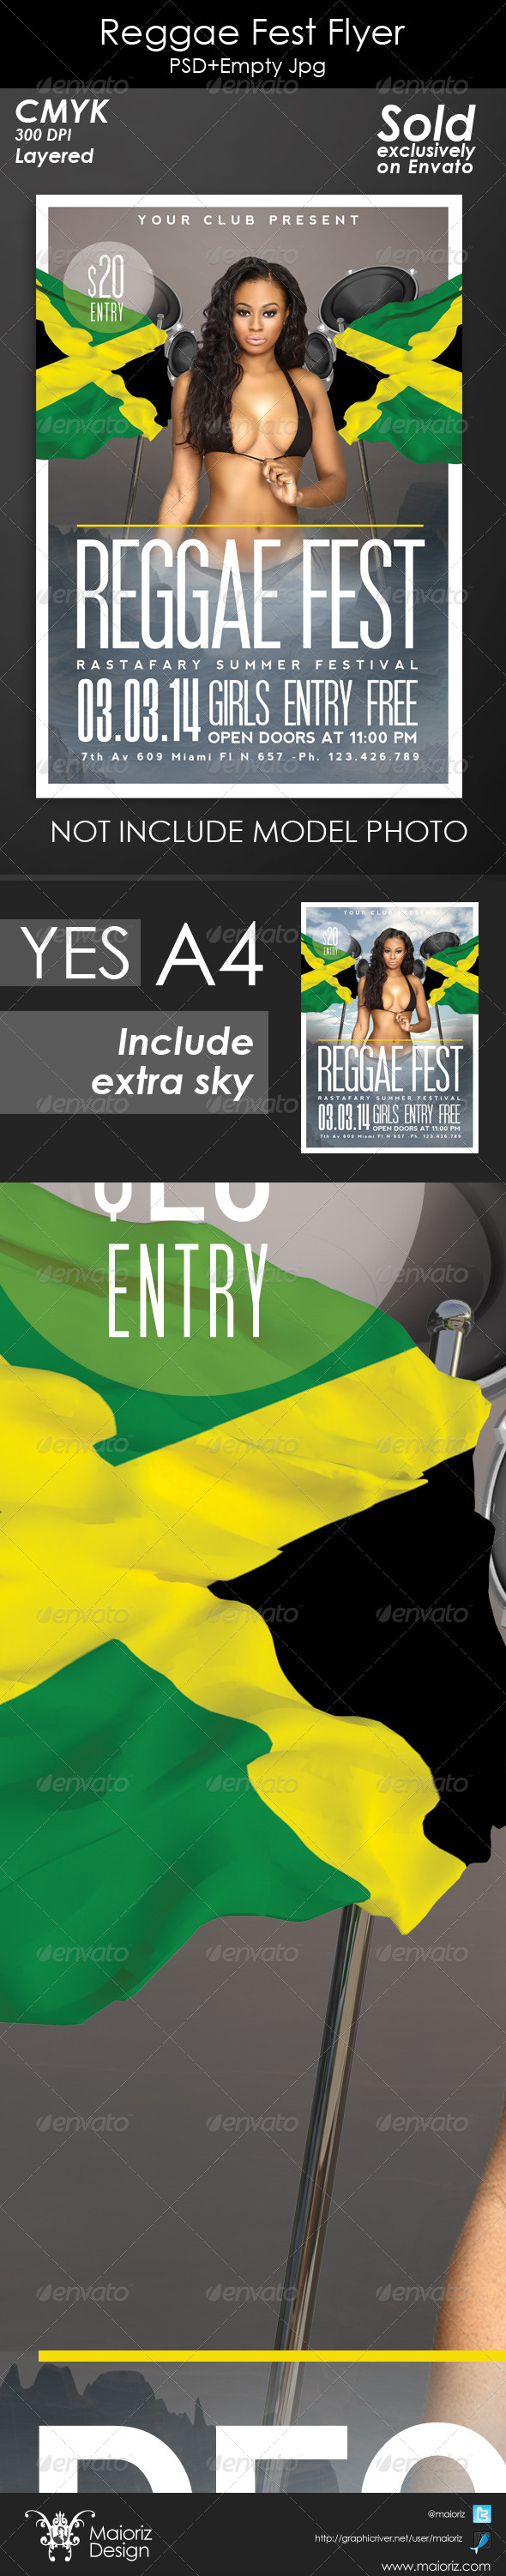 Reggae Fest Flyer - Concerts Events